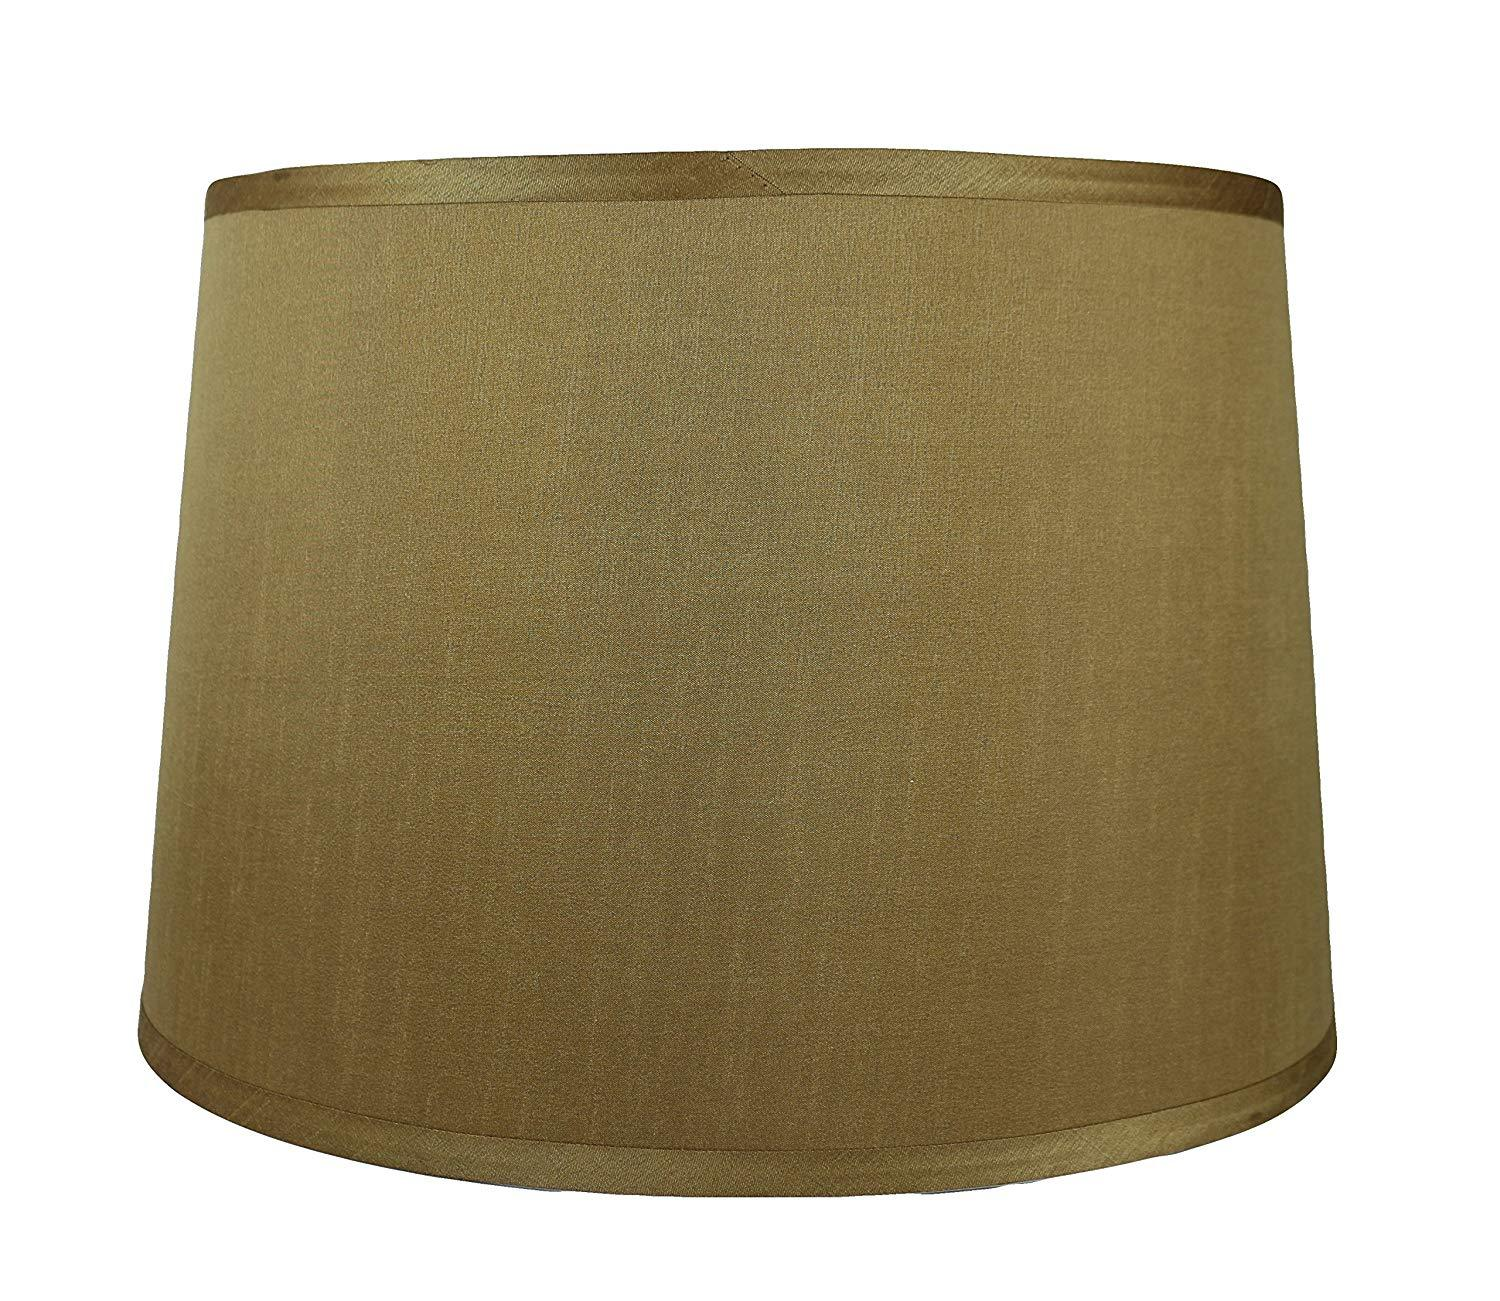 French Drum Lampshade, Faux Silk, 12-inch by 14-inch by 10-inch, Spider Washer Fitter